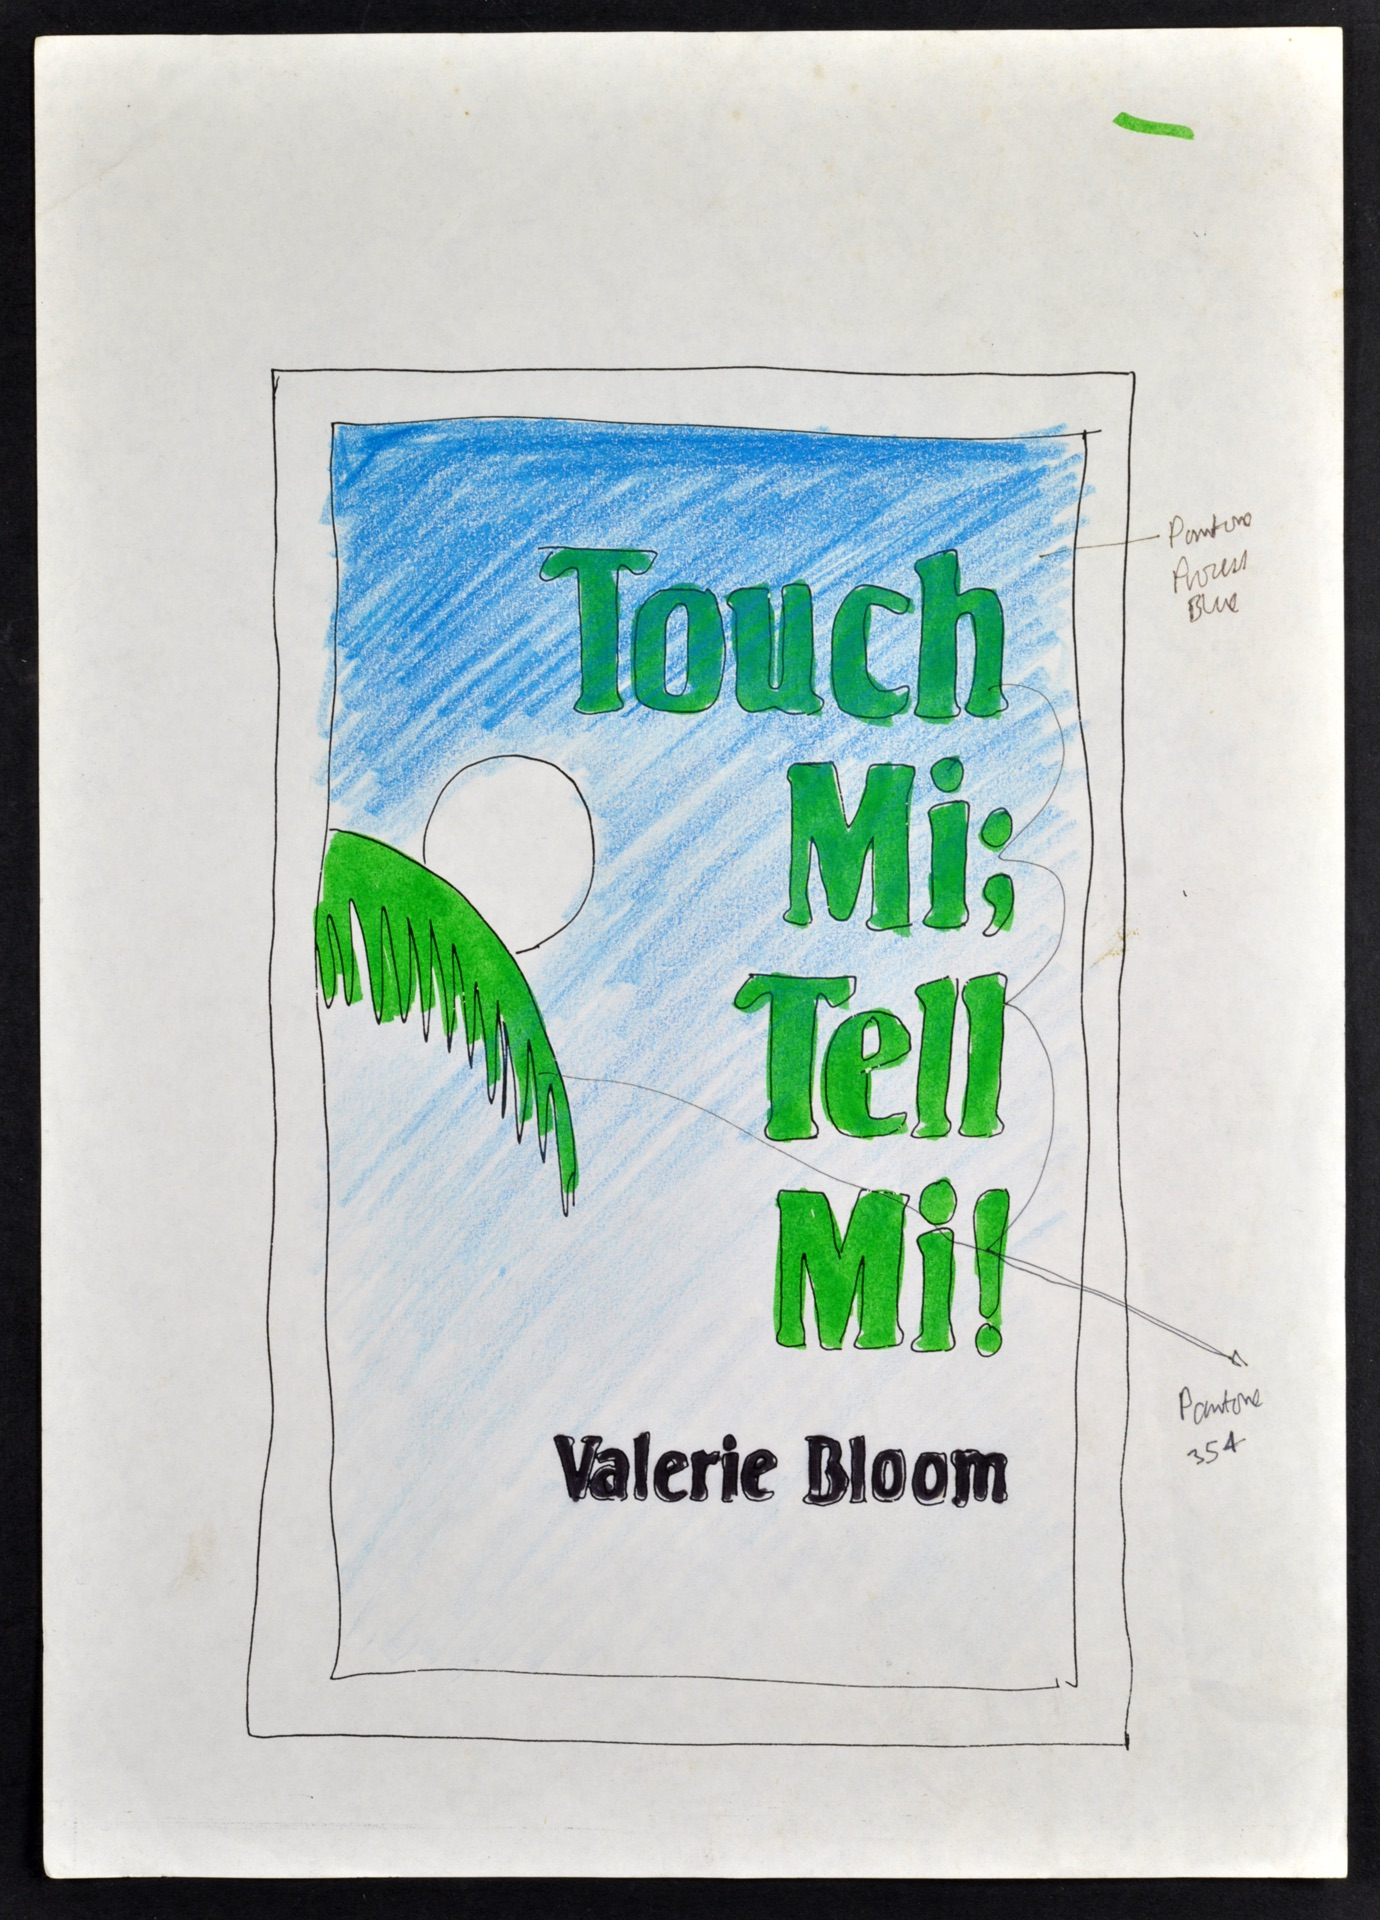 _01 Touch Mi! Tell Mi-Valerie Bloom (artwork Meryvn Weir). Huntley Archives at London Metropolitan A